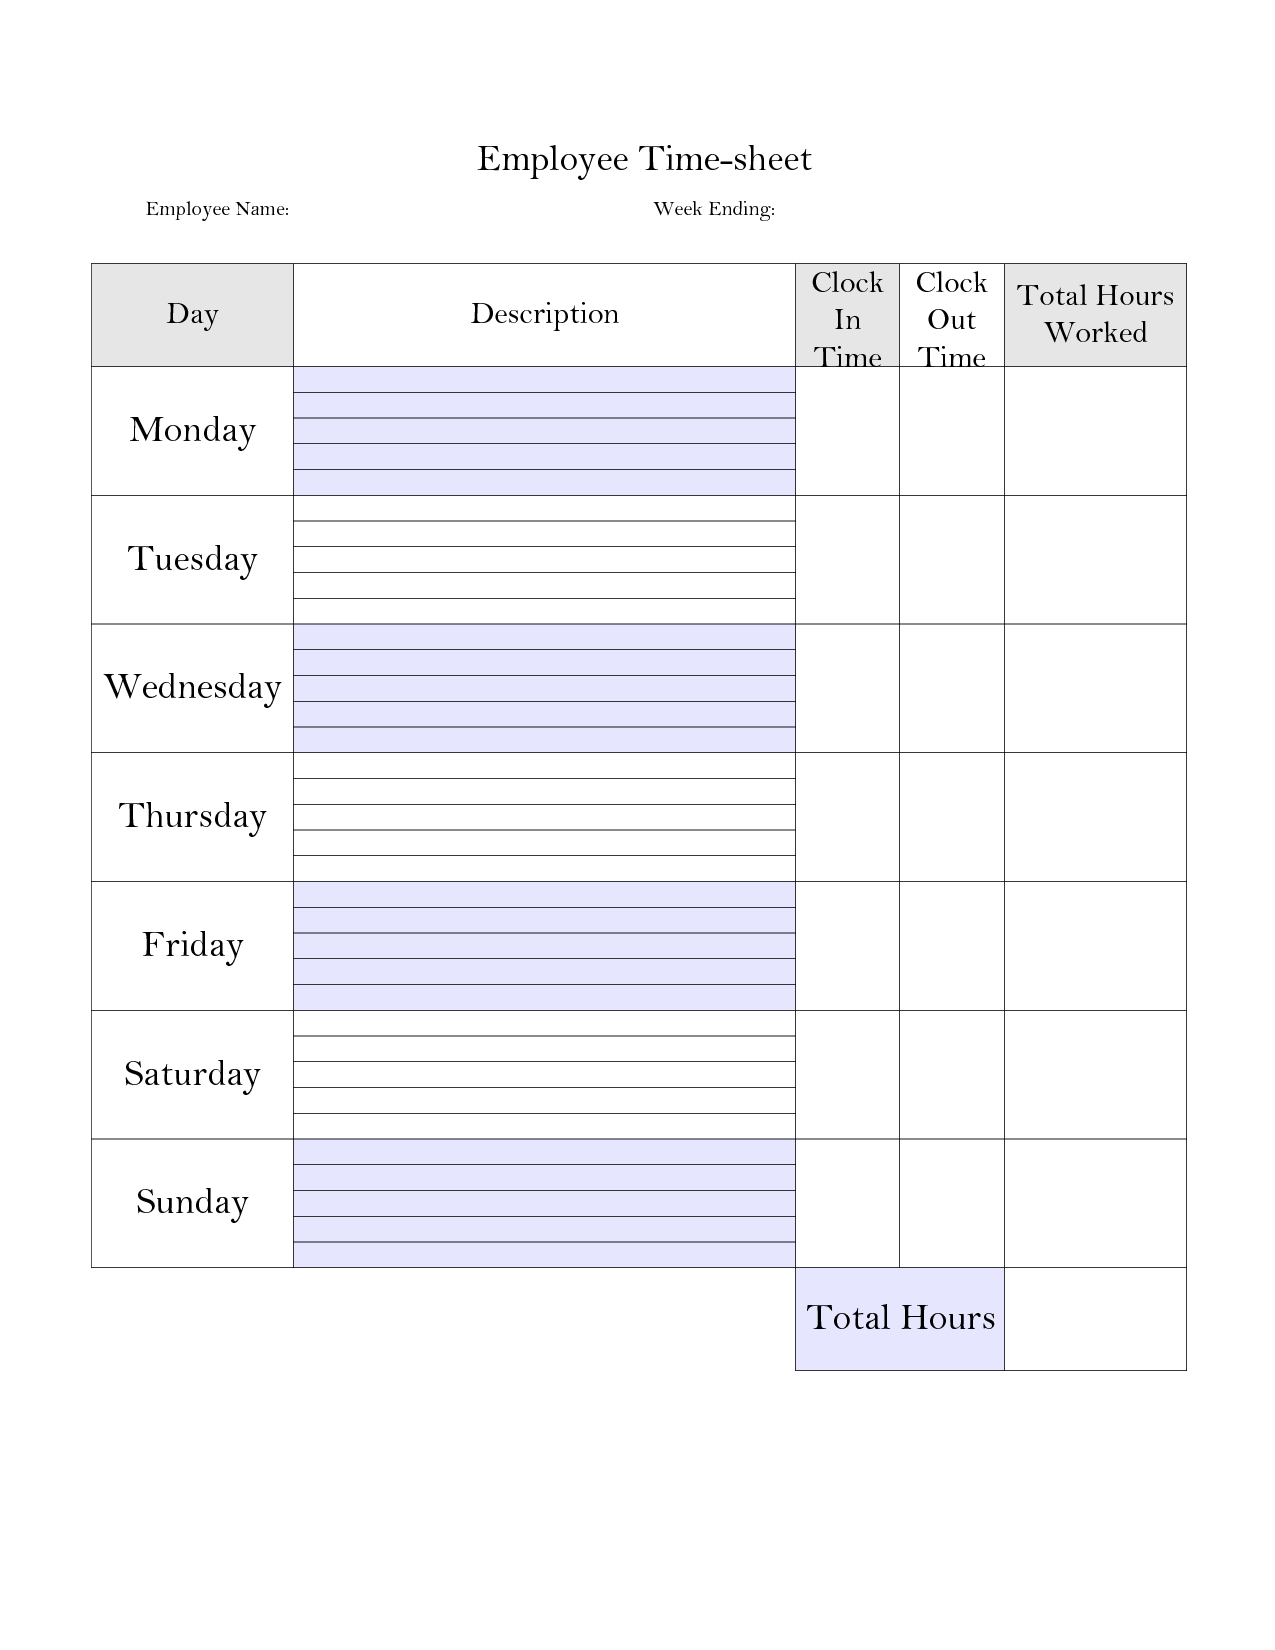 8 Images of Printable Bi-Weekly Time Card Template